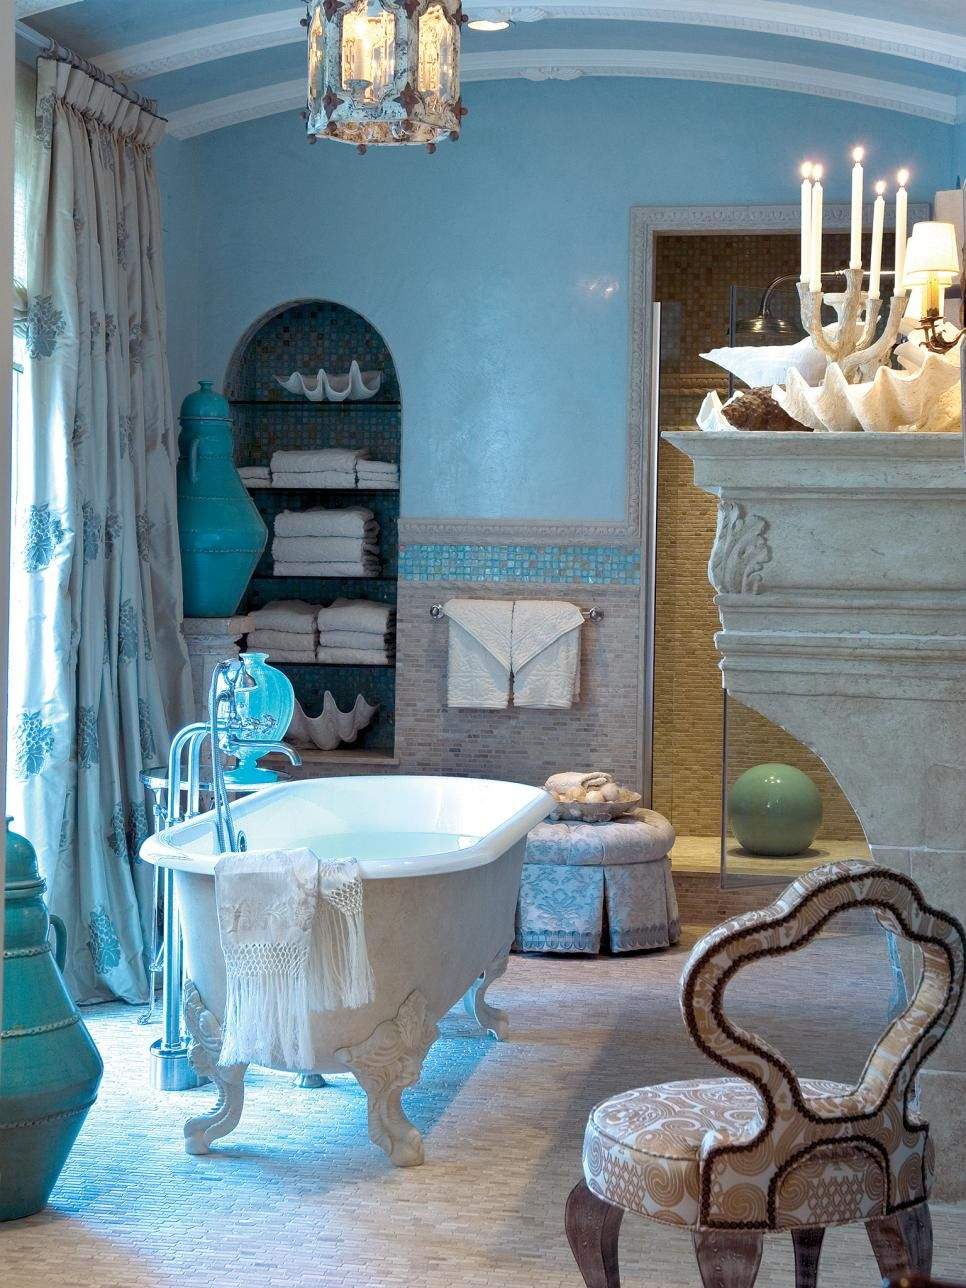 Bathroom Pictures: 99 Stylish Design Ideas You\'ll Love | Green ...